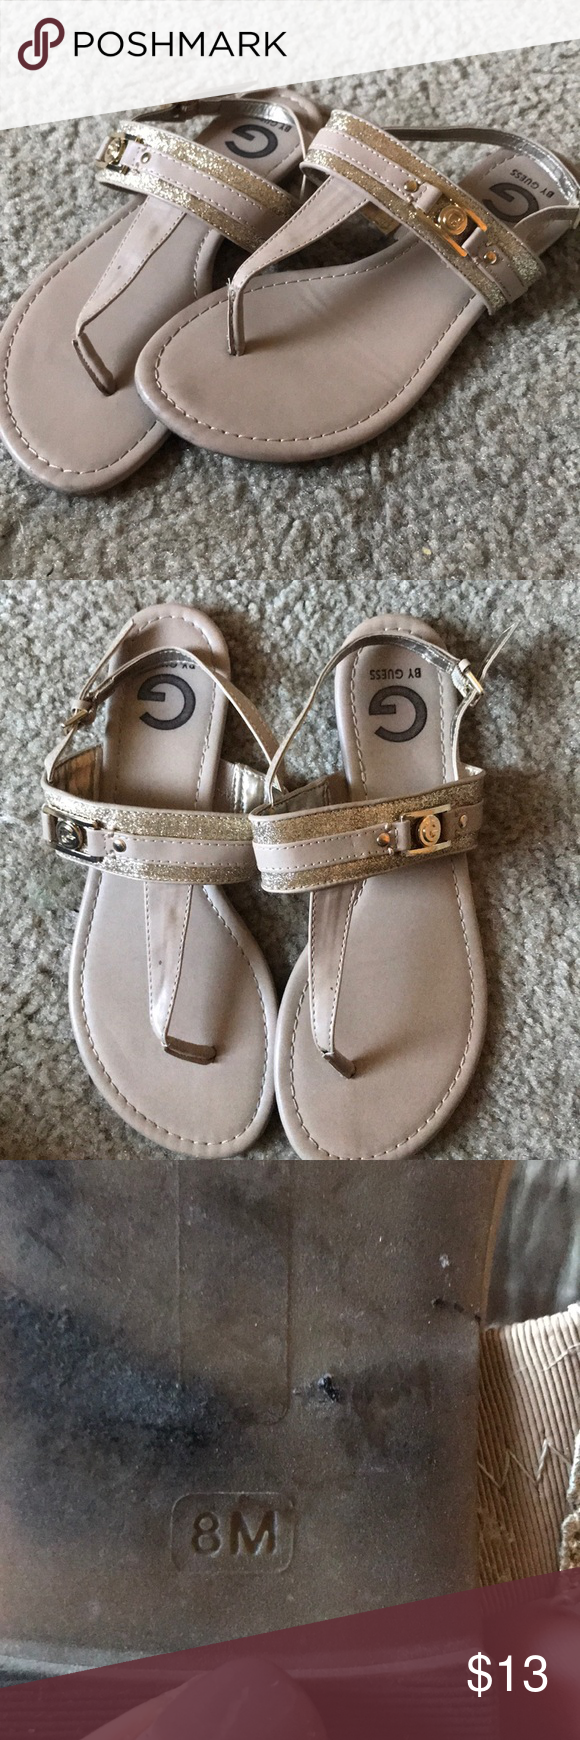 f21fc3ef4067 GUESS WOMENS SANDALS Super cute Guess sandals. Need to go ASAP MOVING OUT  NEXT WEEK